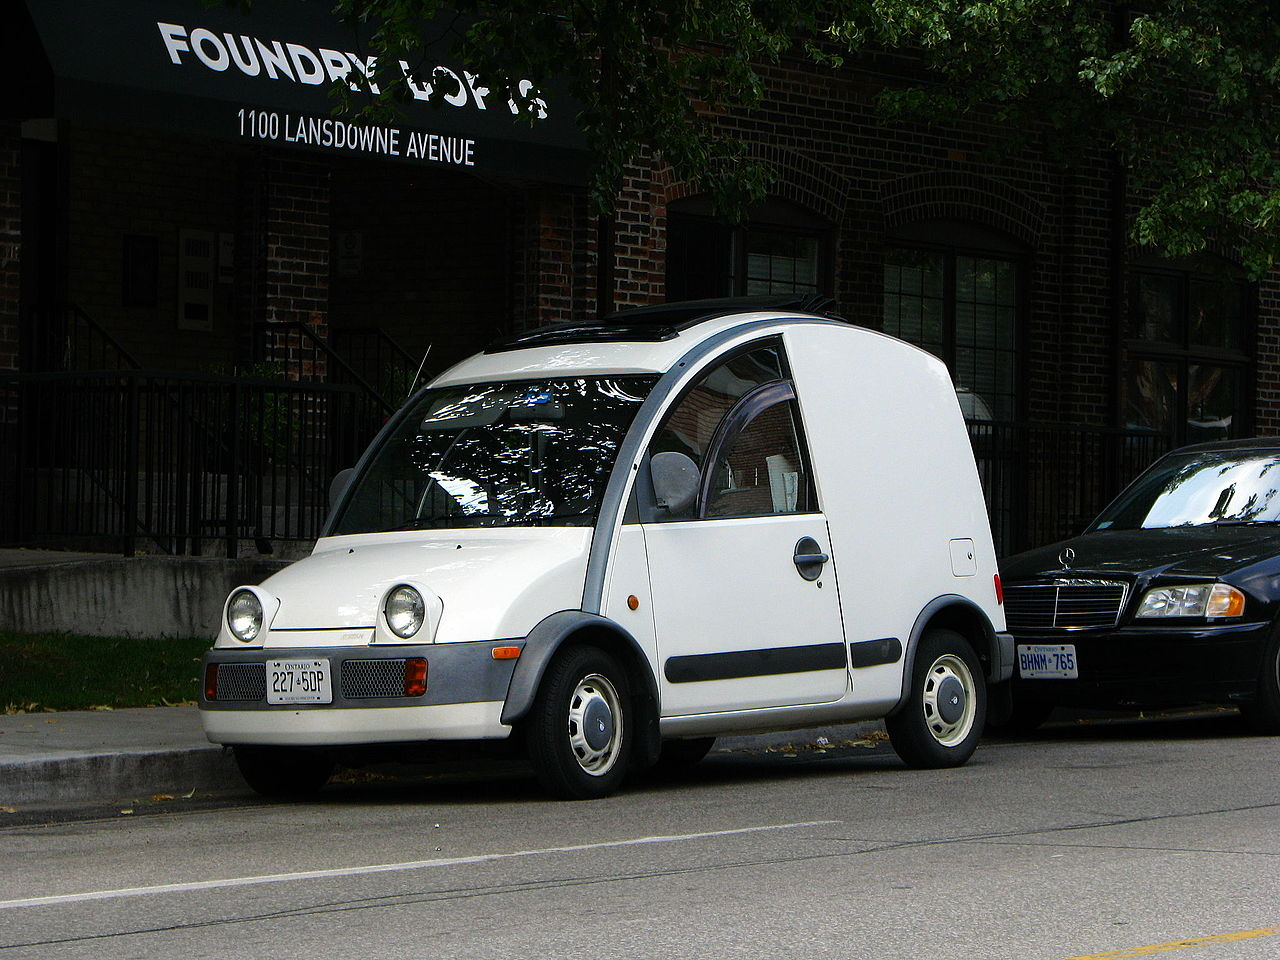 Nissan S-Cargo could be mistaken for the Popemobile.